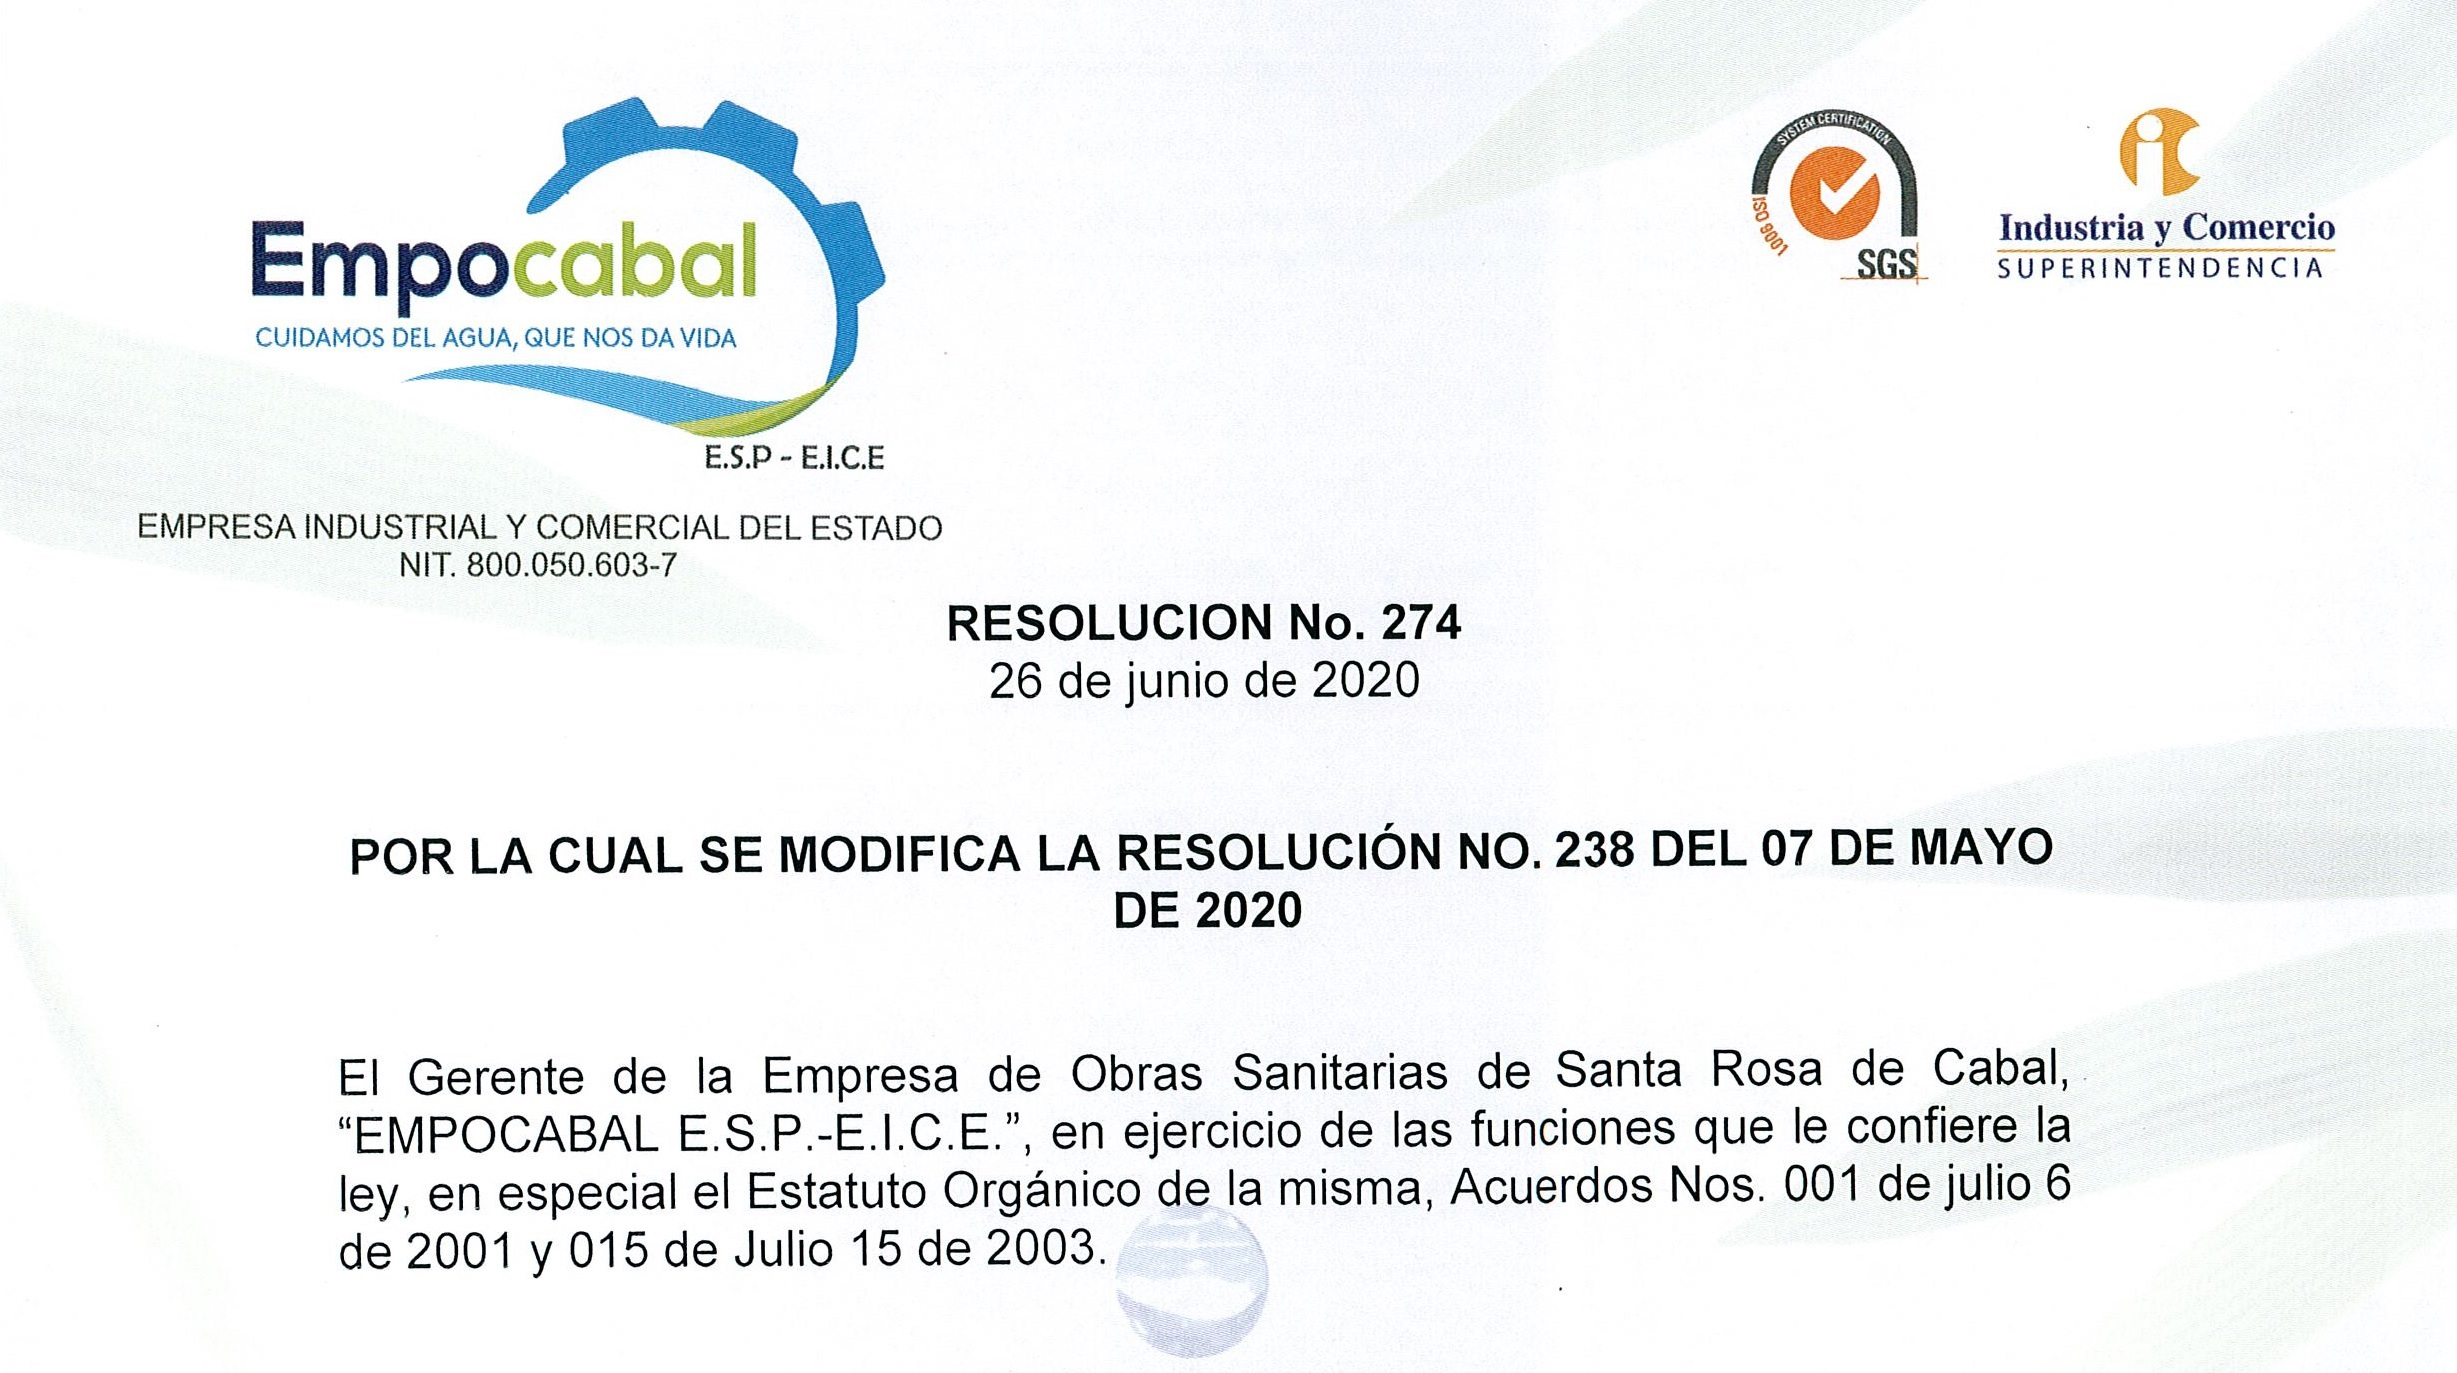 resolucion 274 26 junio 2020